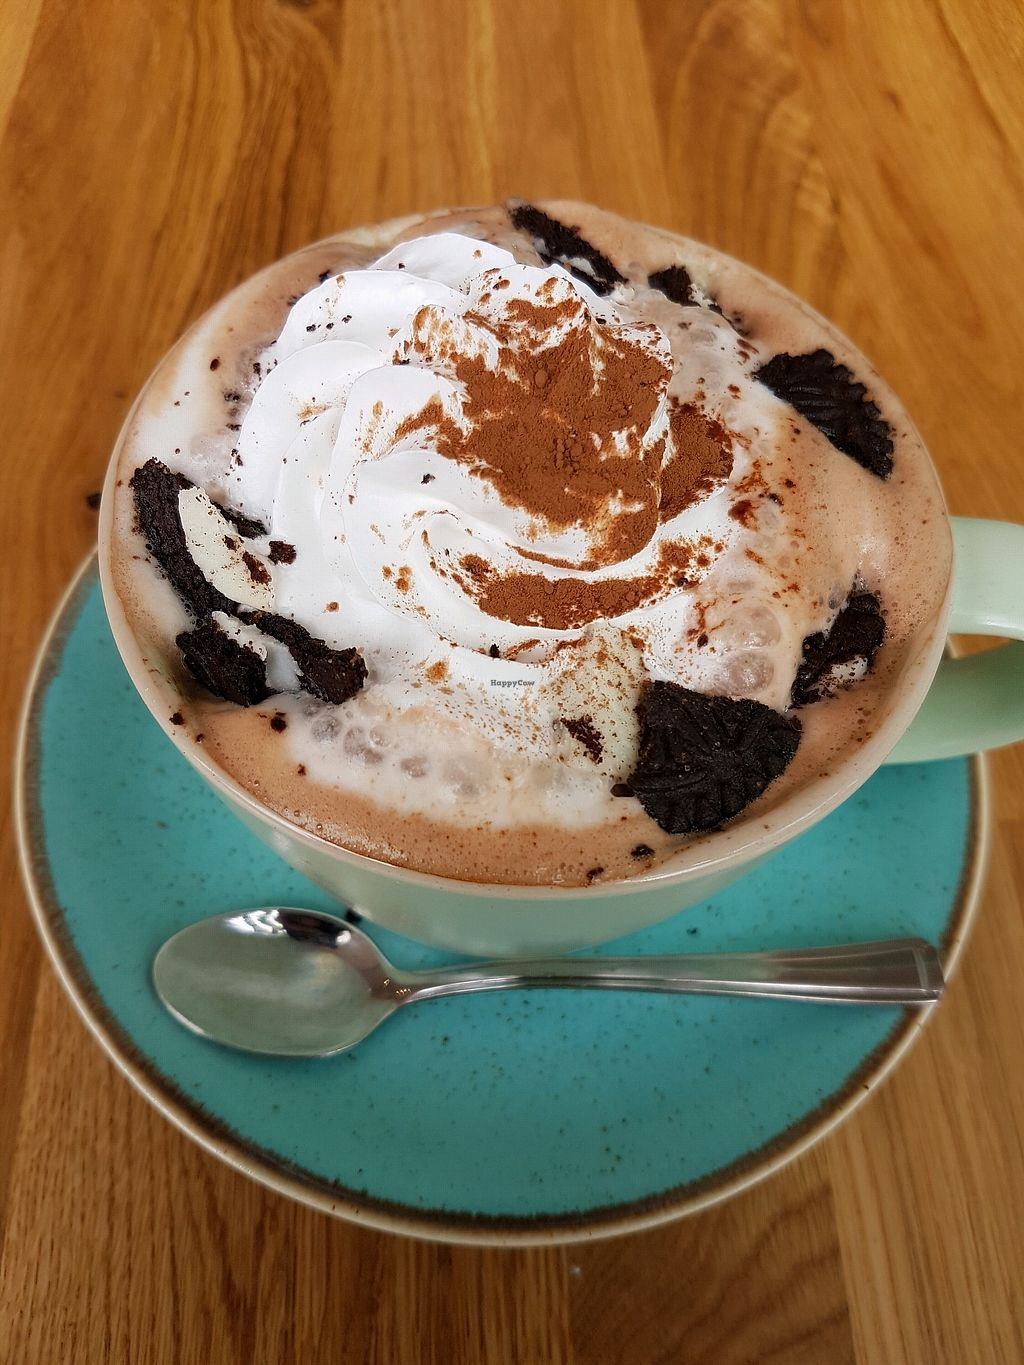 """Photo of Serenity Now  by <a href=""""/members/profile/bpaula35"""">bpaula35</a> <br/>Luxe hot chocolate with oreos and marshmallows  <br/> April 1, 2018  - <a href='/contact/abuse/image/102295/379426'>Report</a>"""